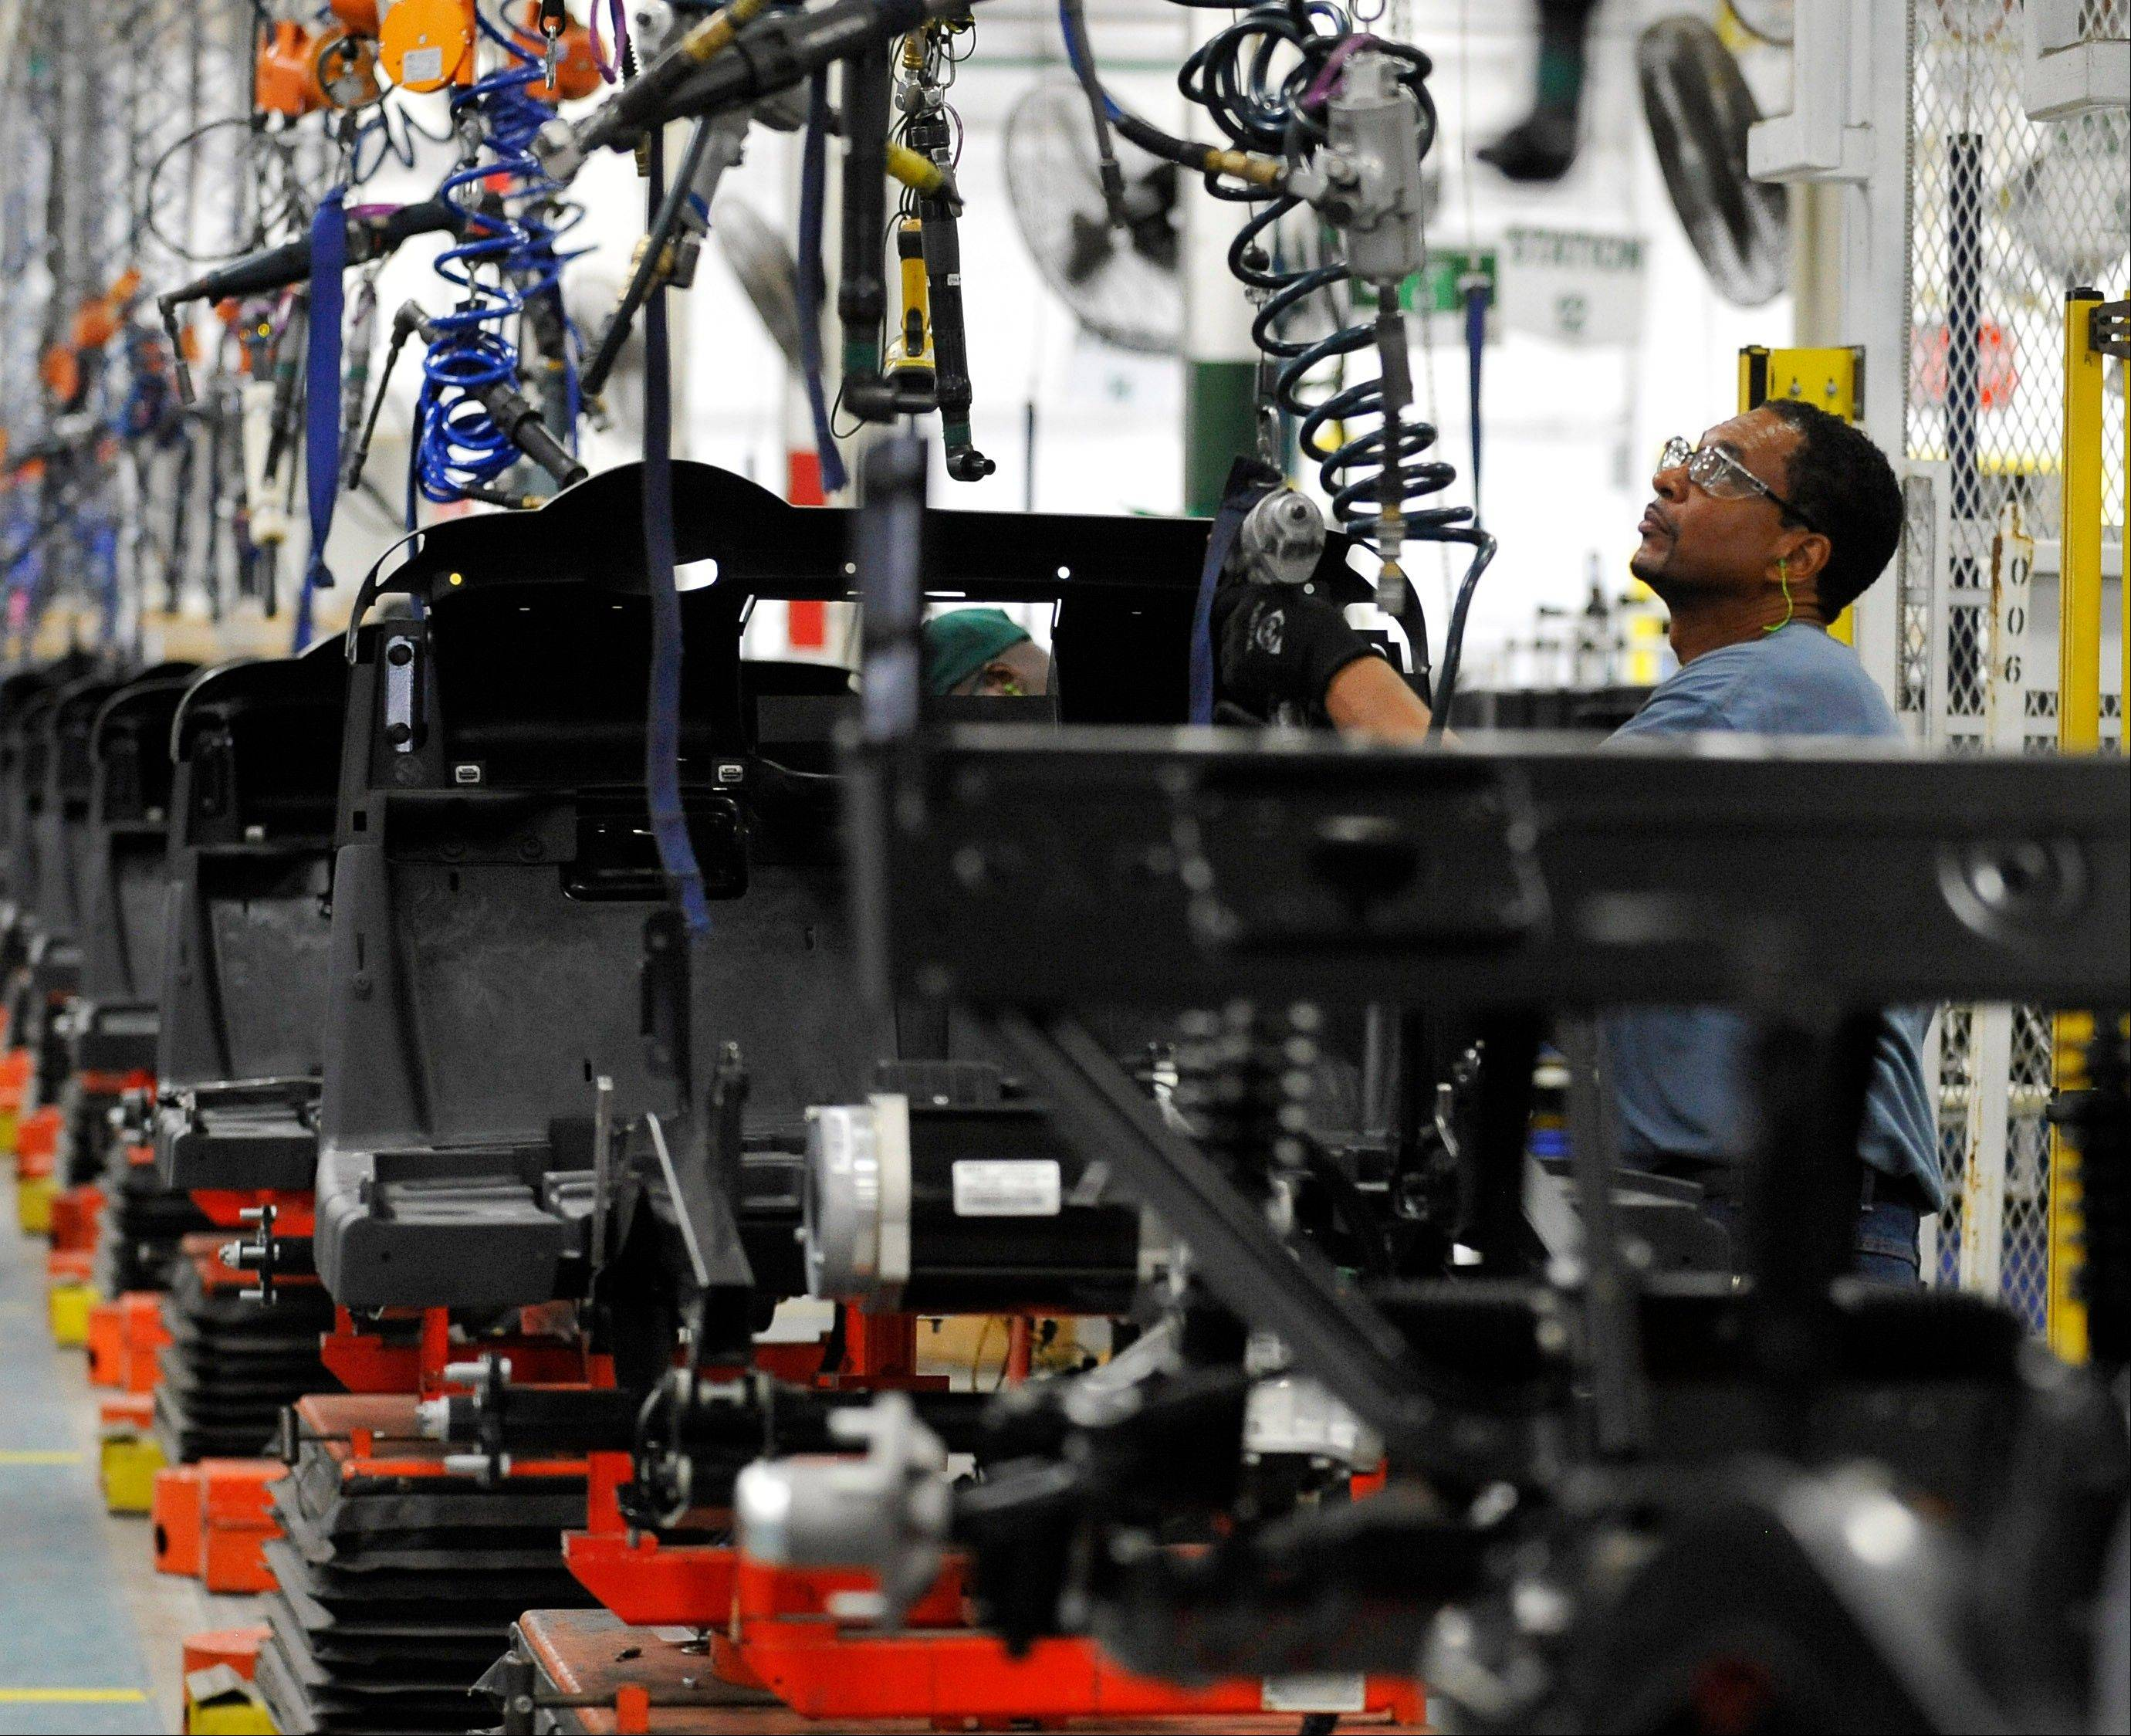 U.S. factory orders increased in December even though companies trimmed their orders for goods that signal investment plans.